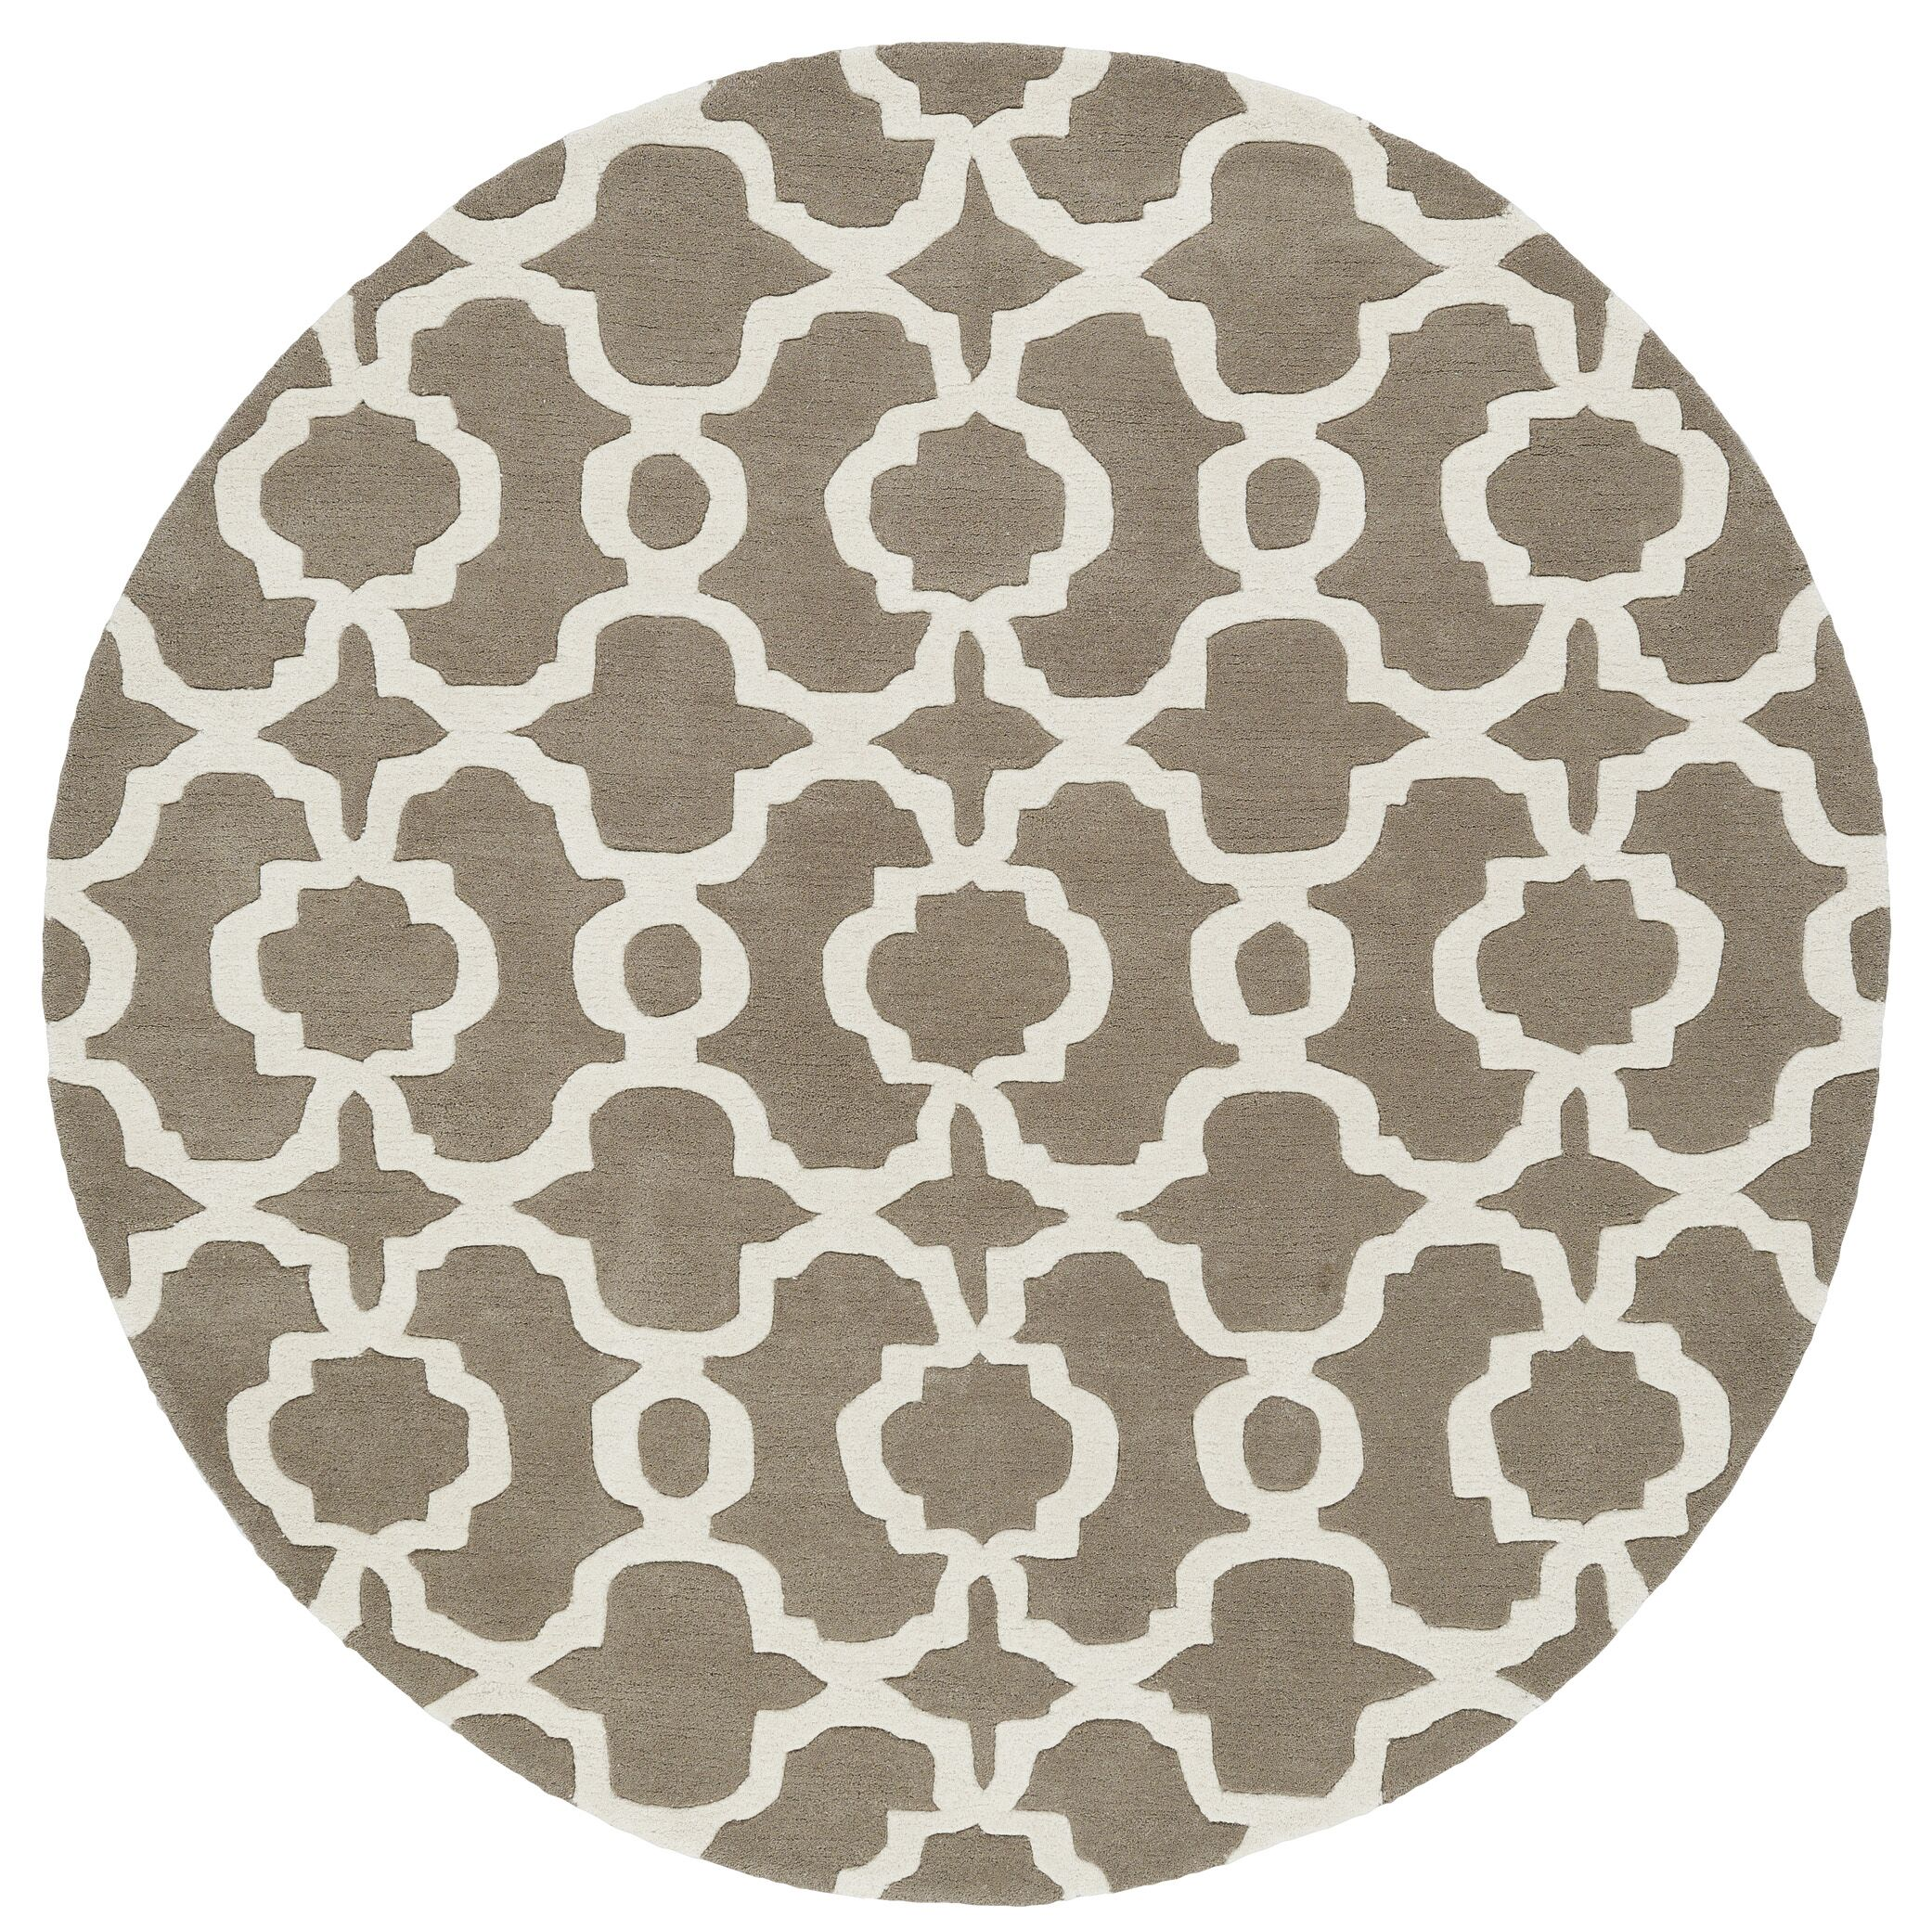 Molly Hand-Tufted Light Brown / Ivory Area Rug Rug Size: Round 7'9